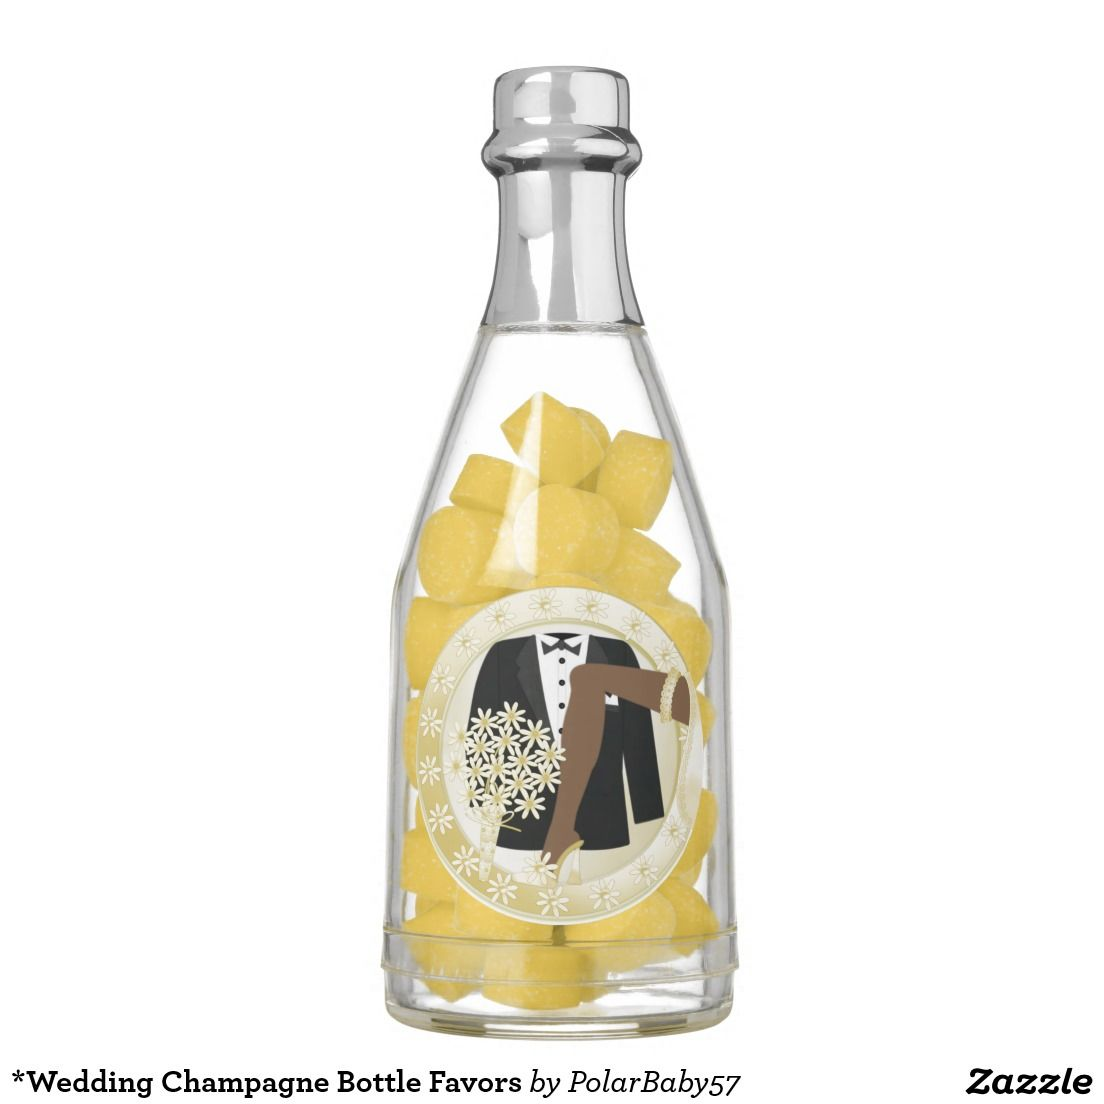 Wedding Champagne Bottle Favors Chewing Gum | Chewing gum